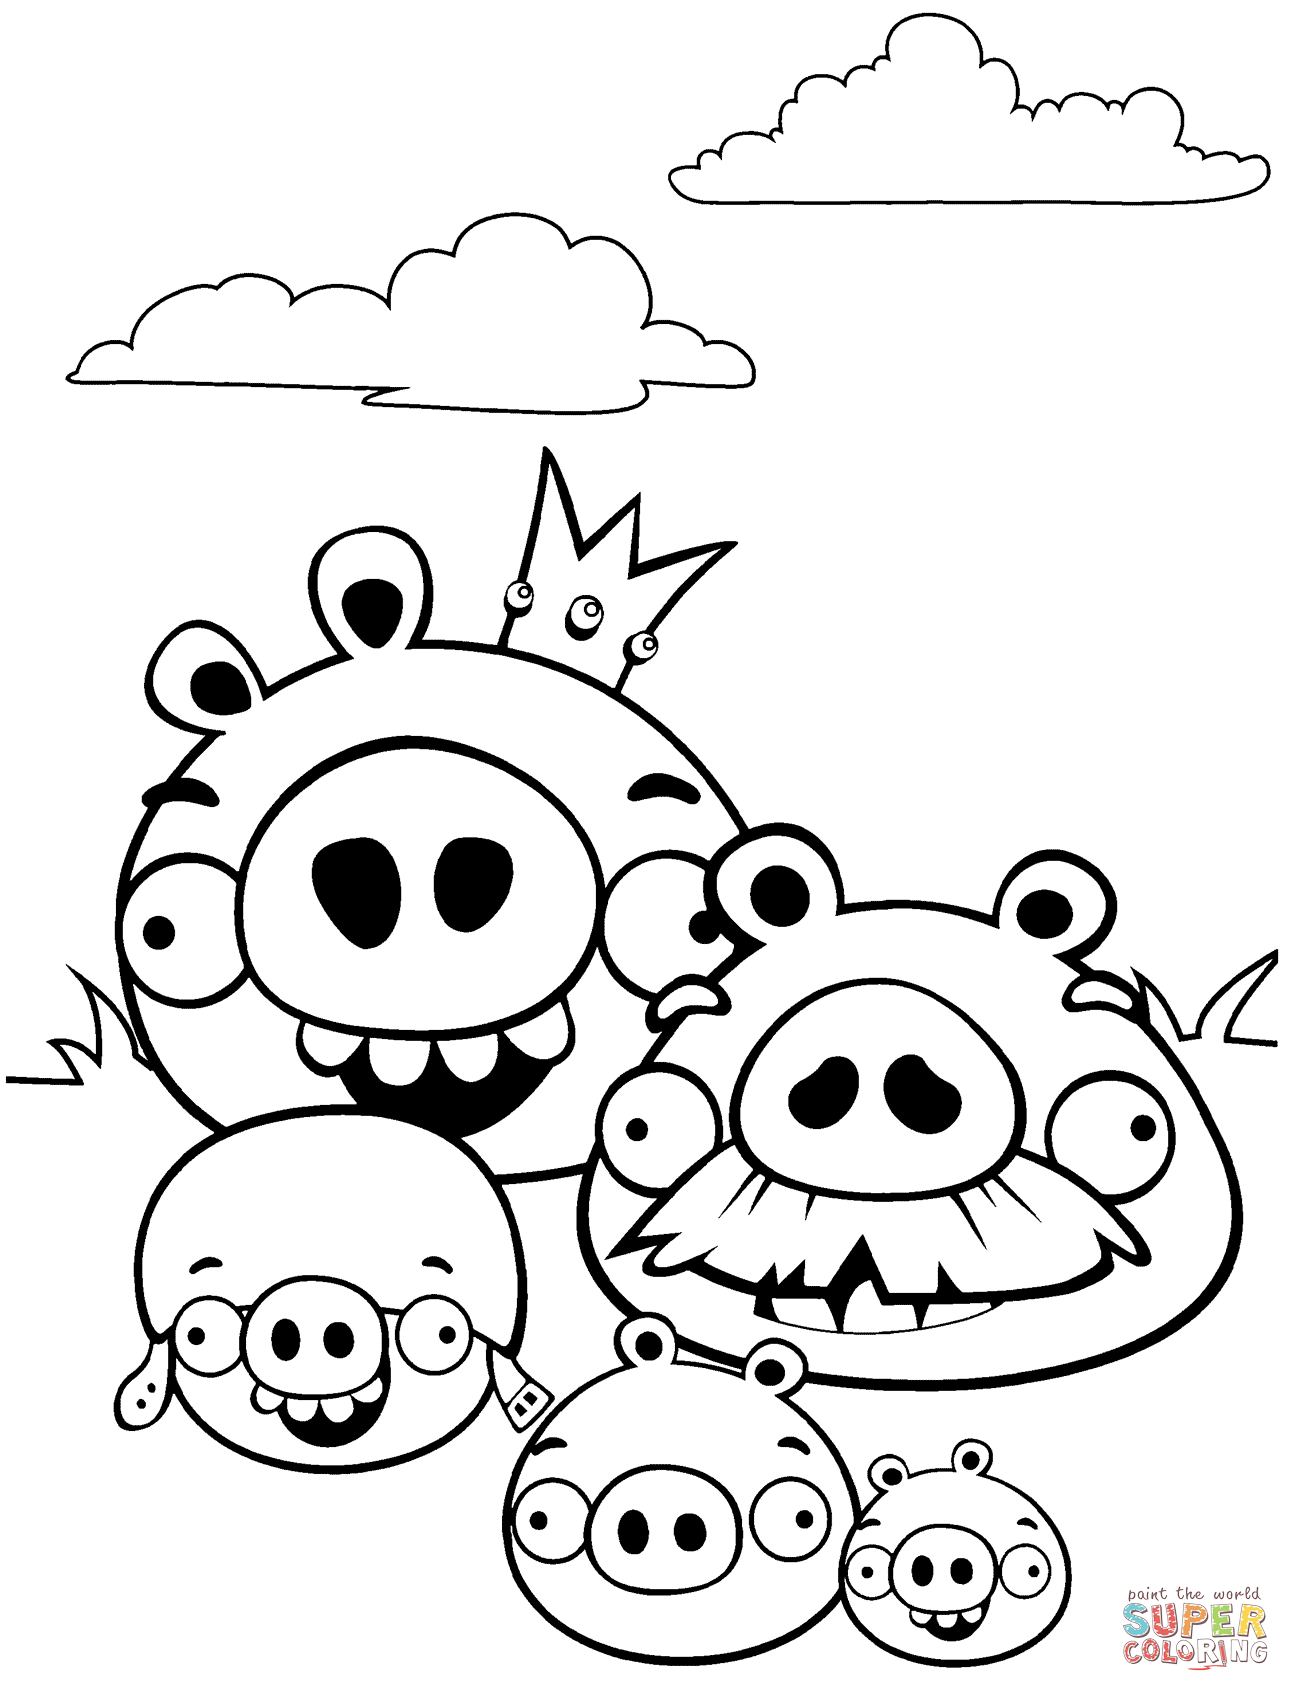 bad-piggies-coloring-page.png (1291×1692) | Kids\' Coloring Pages ...